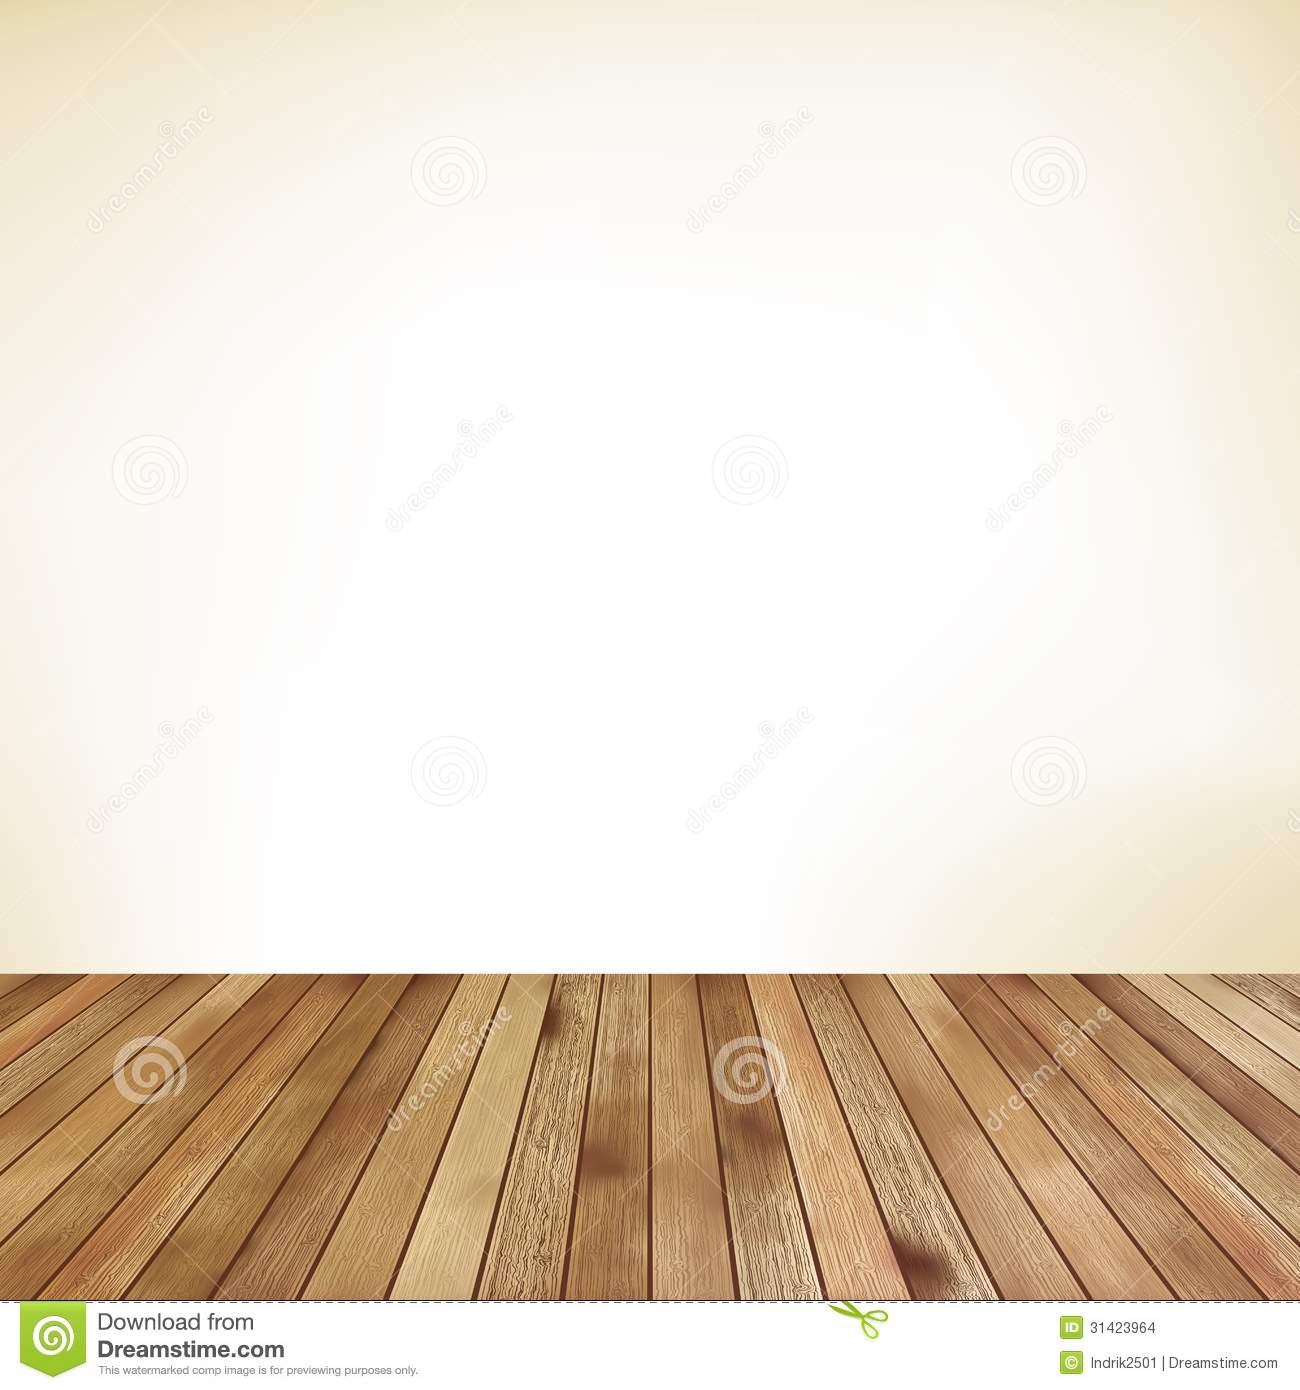 Clip Art Carpet And Flooring : Empty room with wall and wooden floor eps stock vector